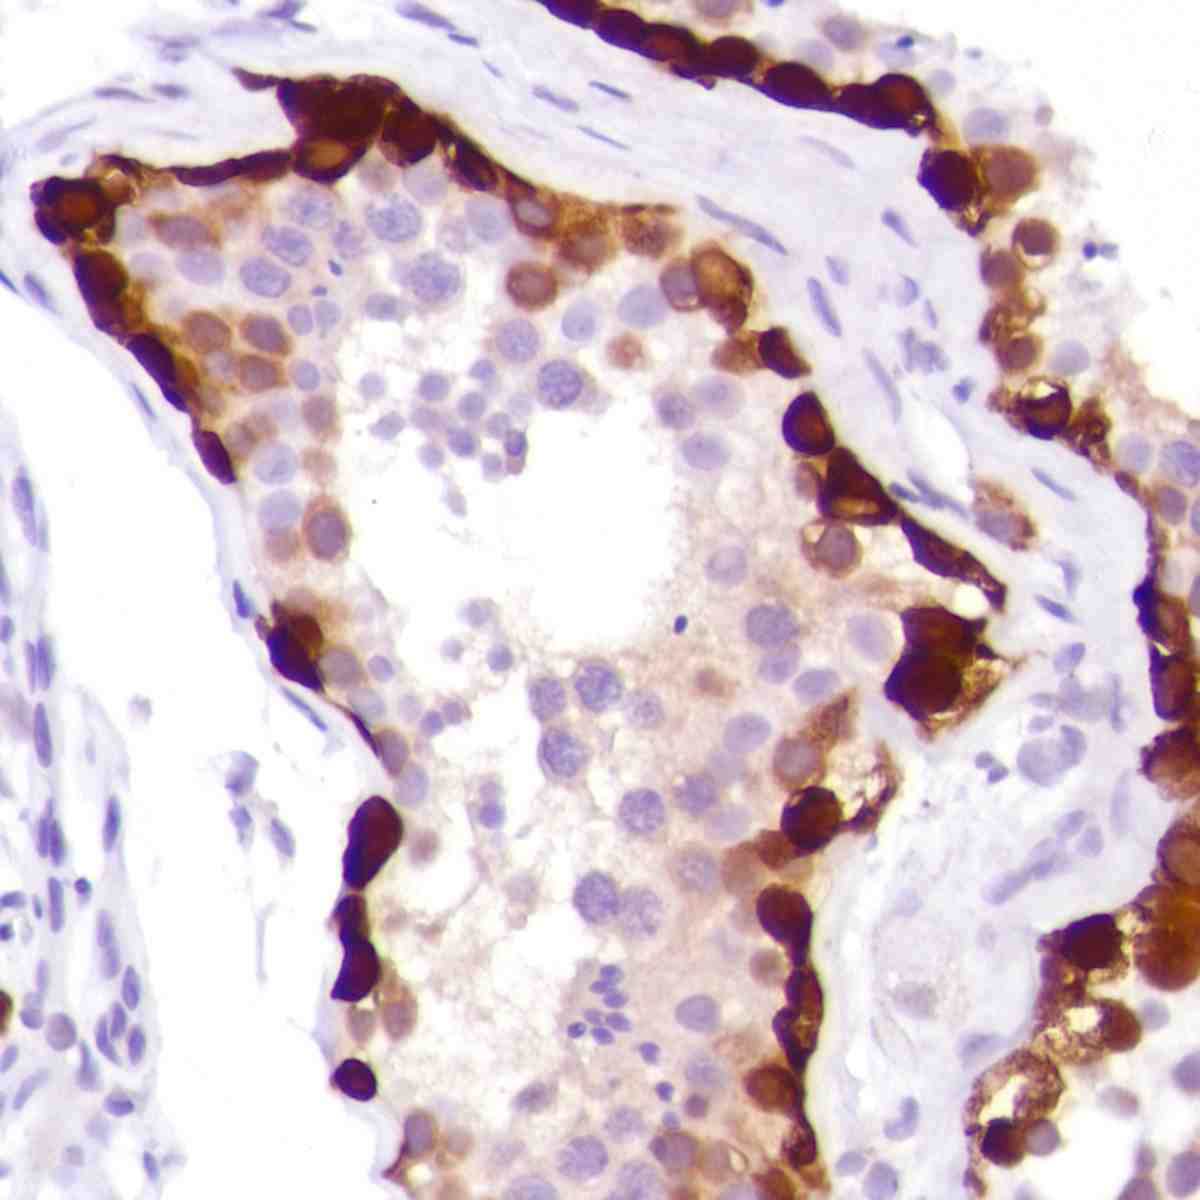 Human Testis stained with anti-MAGE-A1 antibody